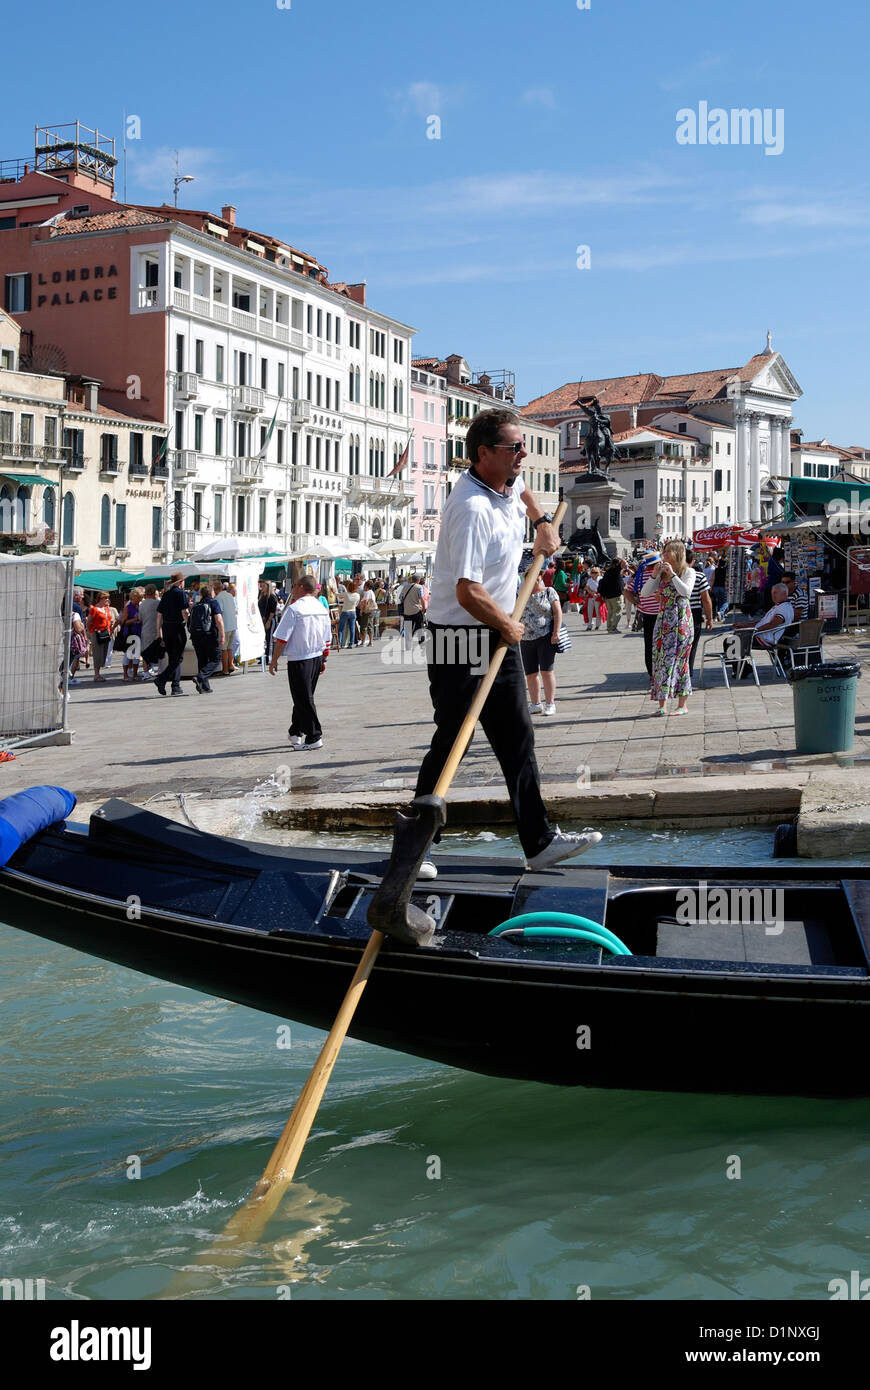 Gondolier at the Grand Canal in Venice. - Stock Image